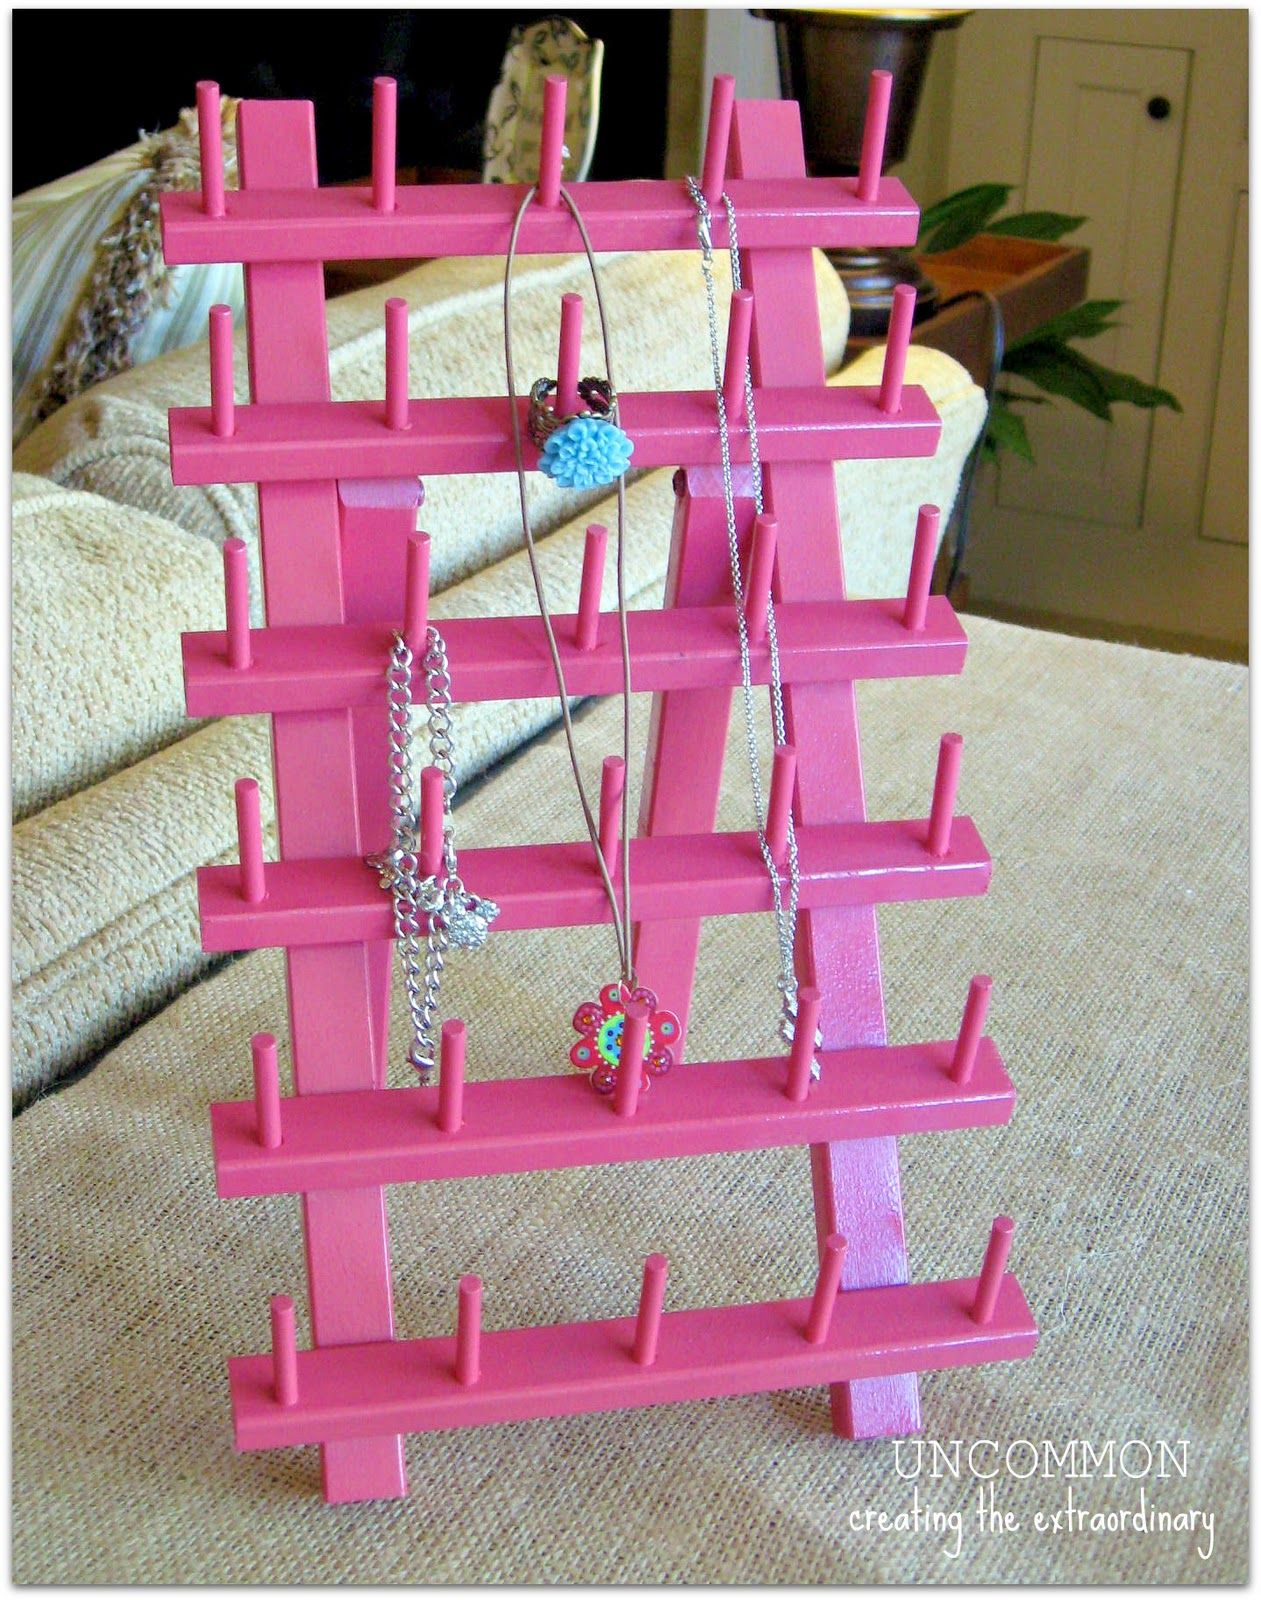 #Jewelry Holder from #Thread Rack...{ Organizing in 2012 } | Uncommon